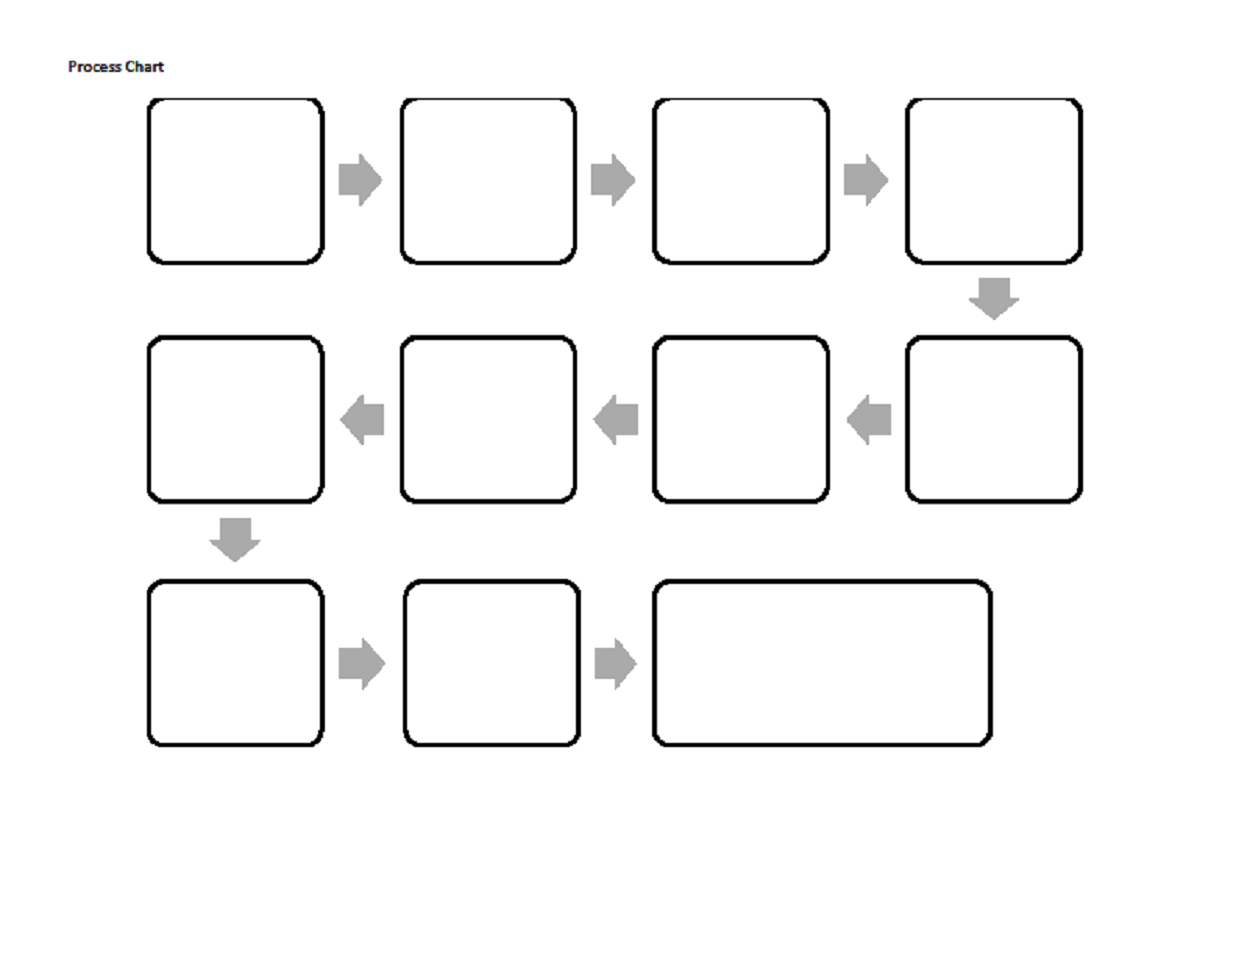 Process chart blank 150 math equations equation and chart blank flow chart may be used for reading comprehension may be helpful for sequential nvjuhfo Gallery